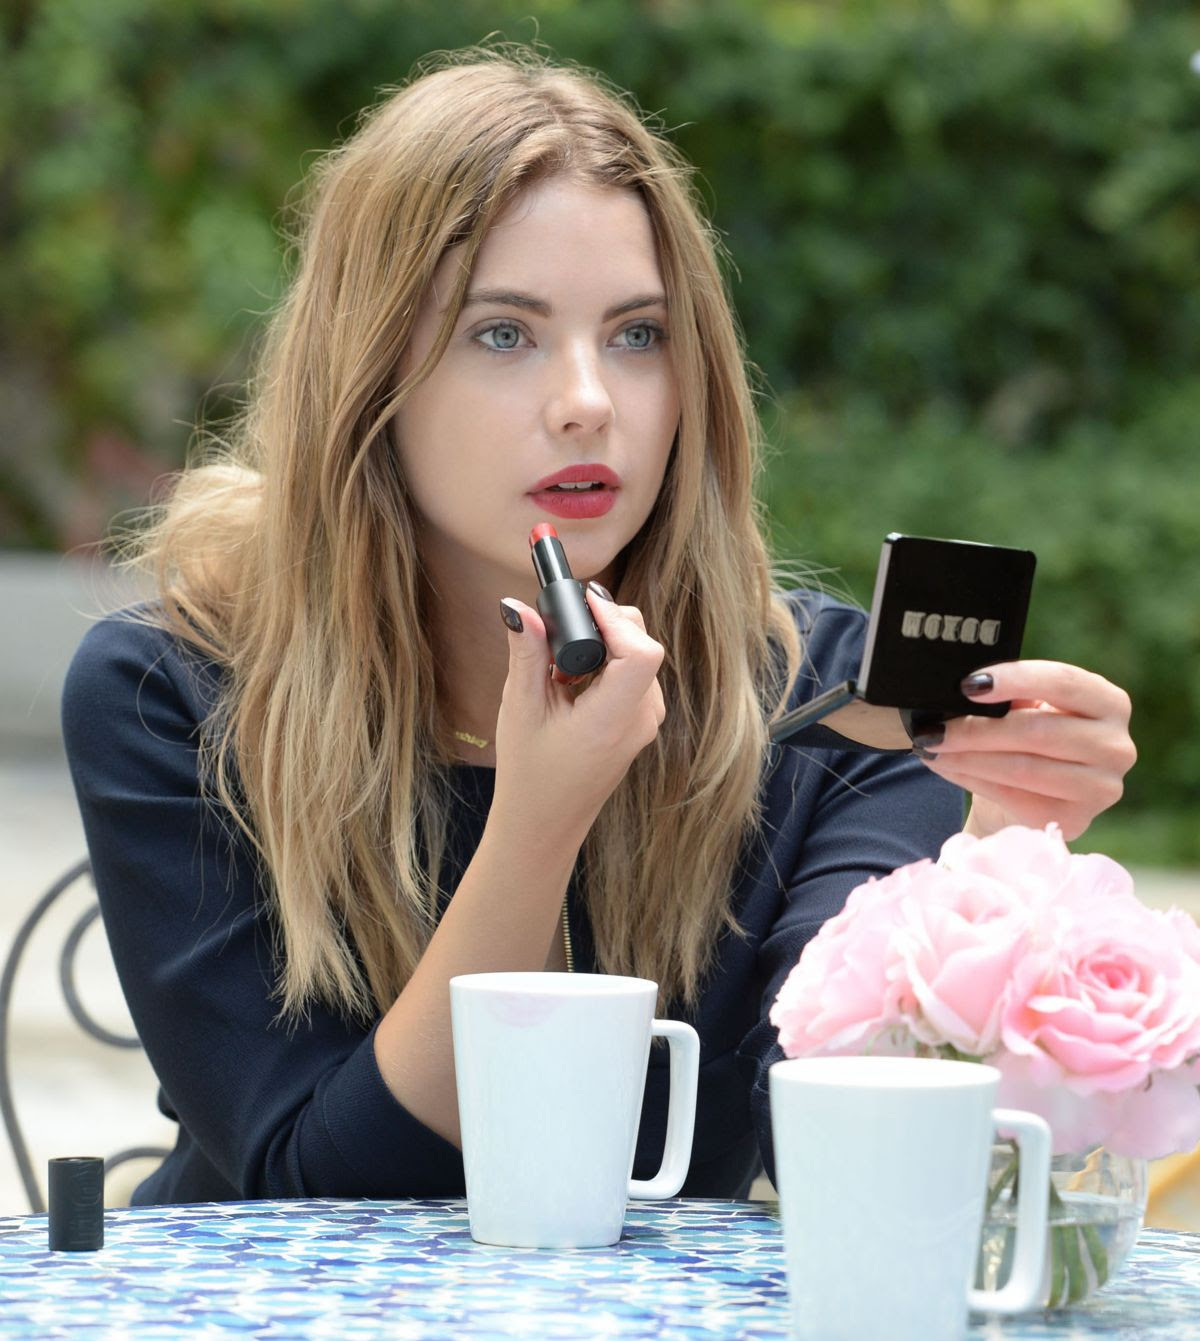 ASHLEY BENSON at Buxom Bold Gel Lipstick Photoshoot in Los Angeles 11/02/2015